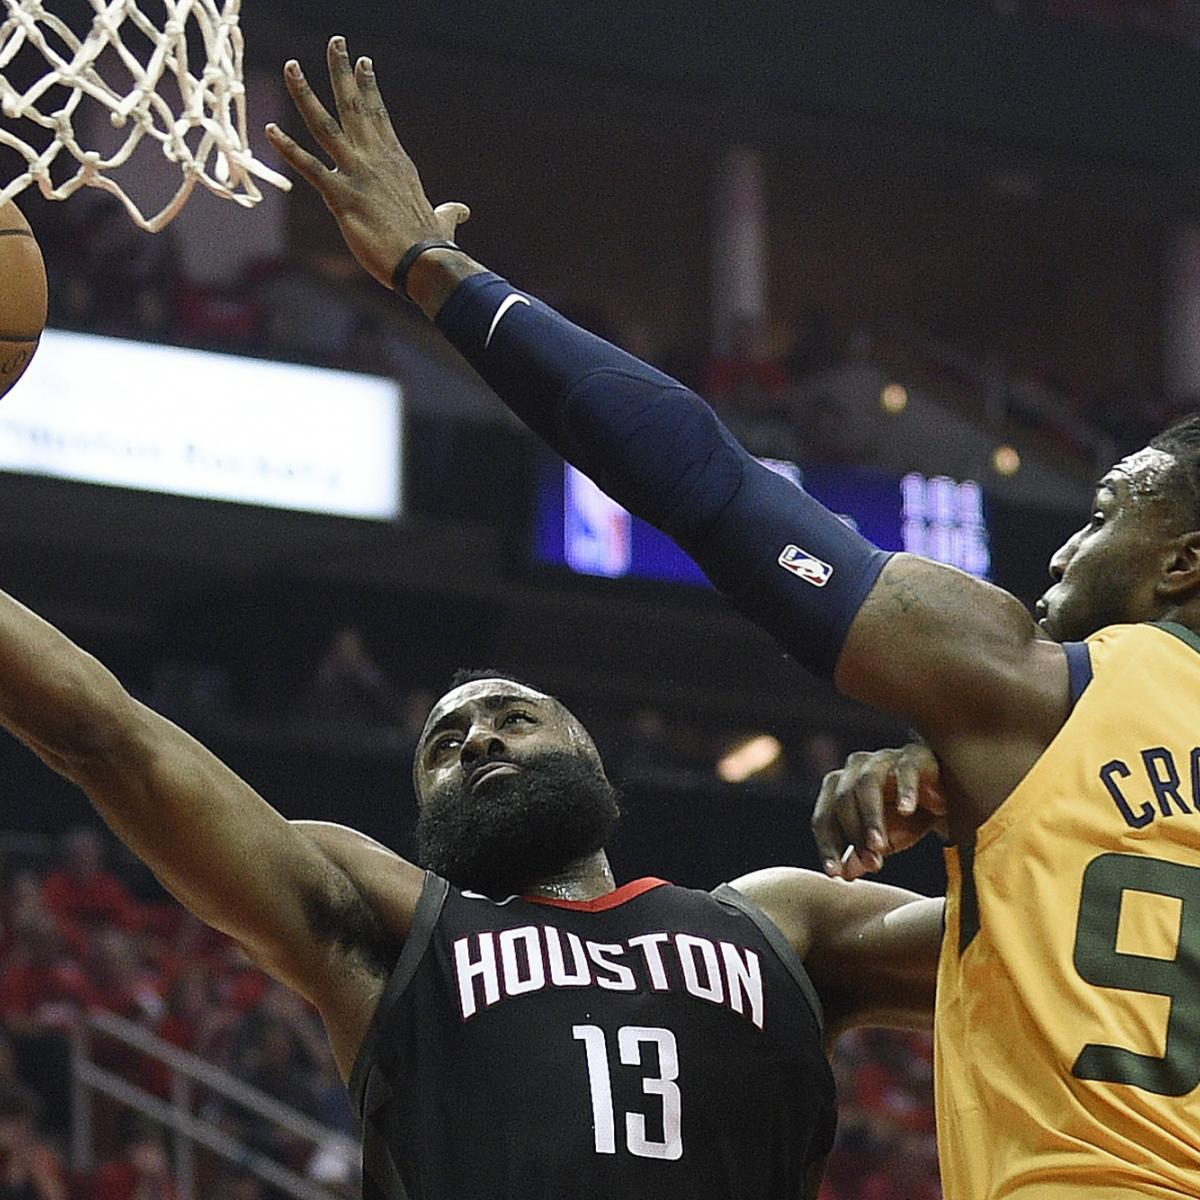 Rockets Jazz Game 1: James Harden Calls Rockets Offense 'Different' After Game